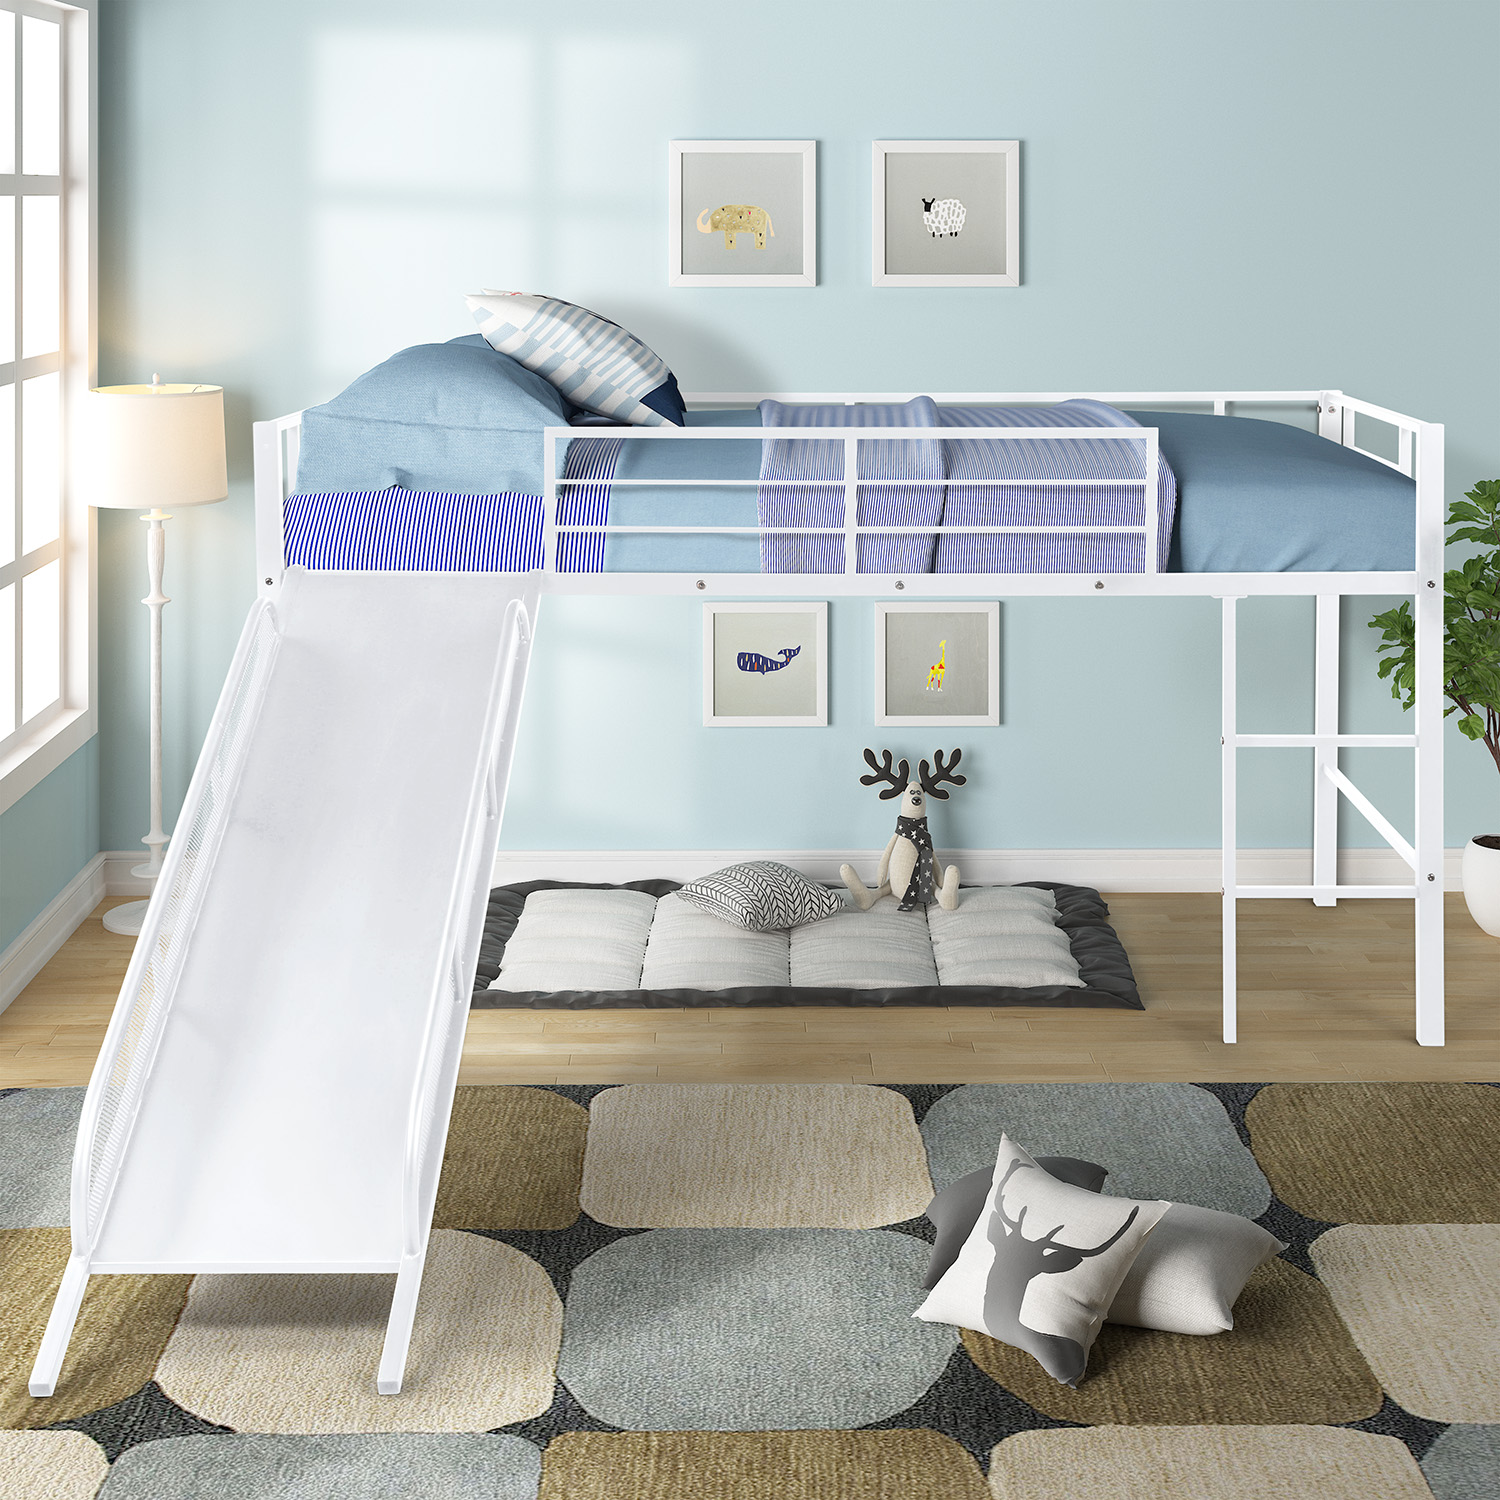 Metal Loft Bed With Slide Sturdy Twin Size Loft Bed Frame Loft Bed With White Slide For Kids Toddlers Kids Bed For Boys Girls Bedroom No Box Spring Needed Multifunctional Design White